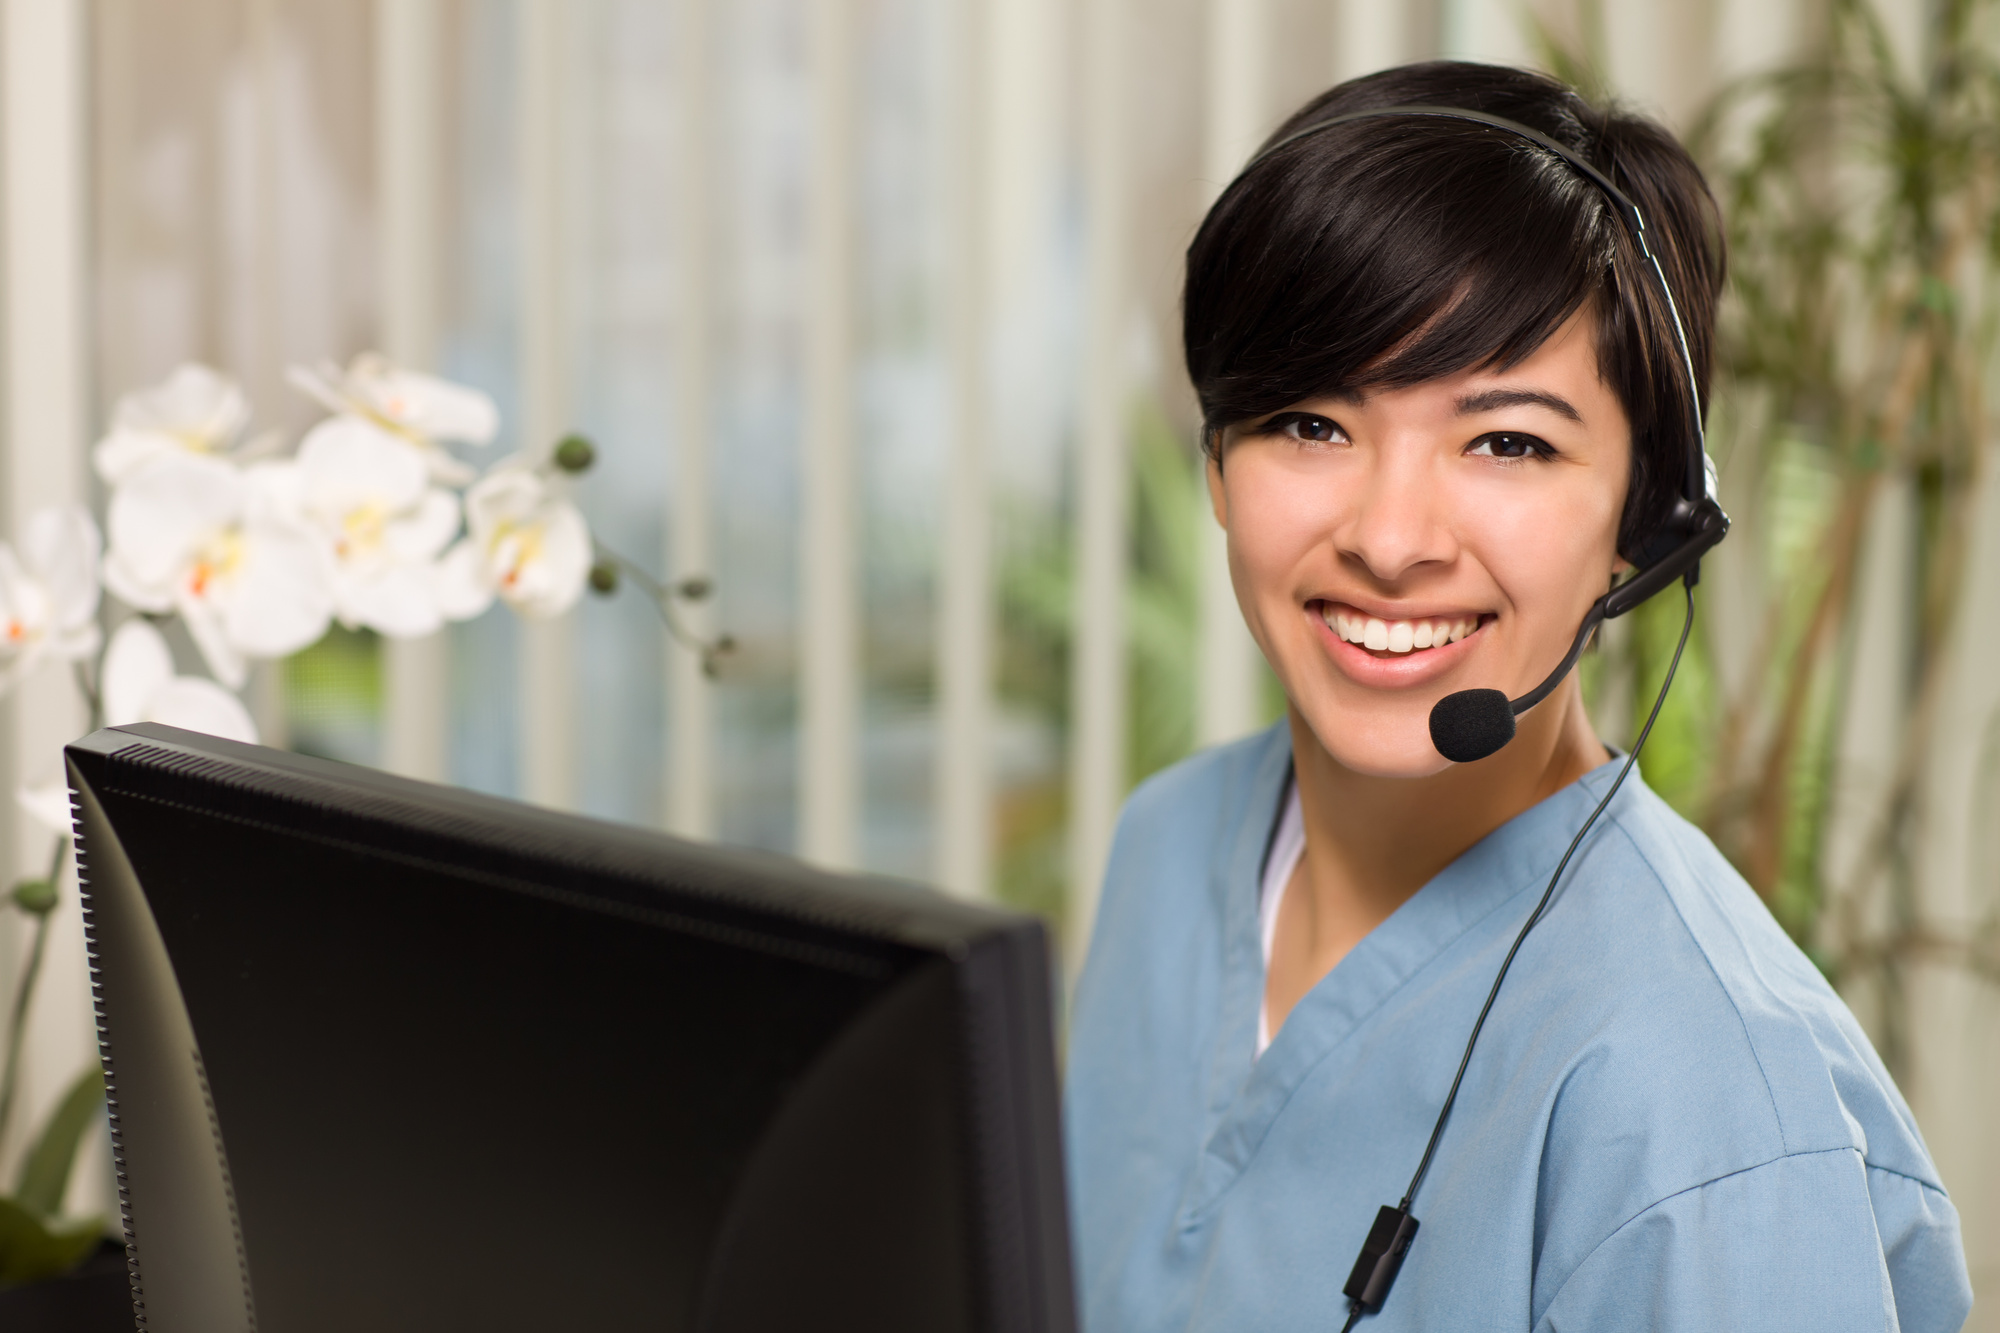 The Benefits of Using Answering Services